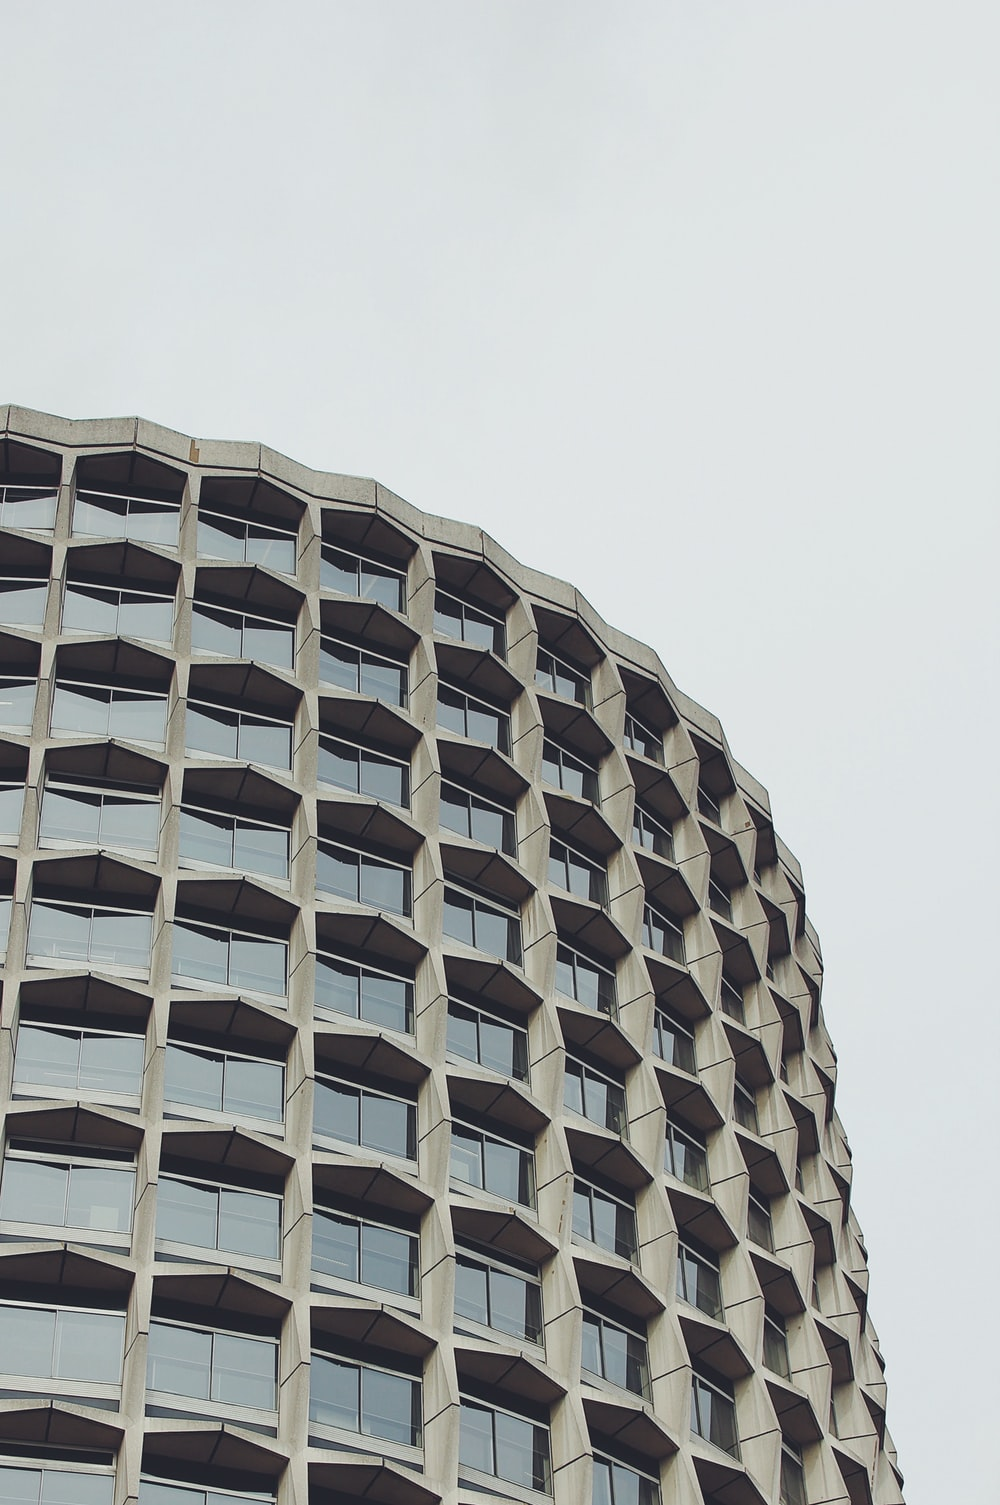 gray concrete building during daytime